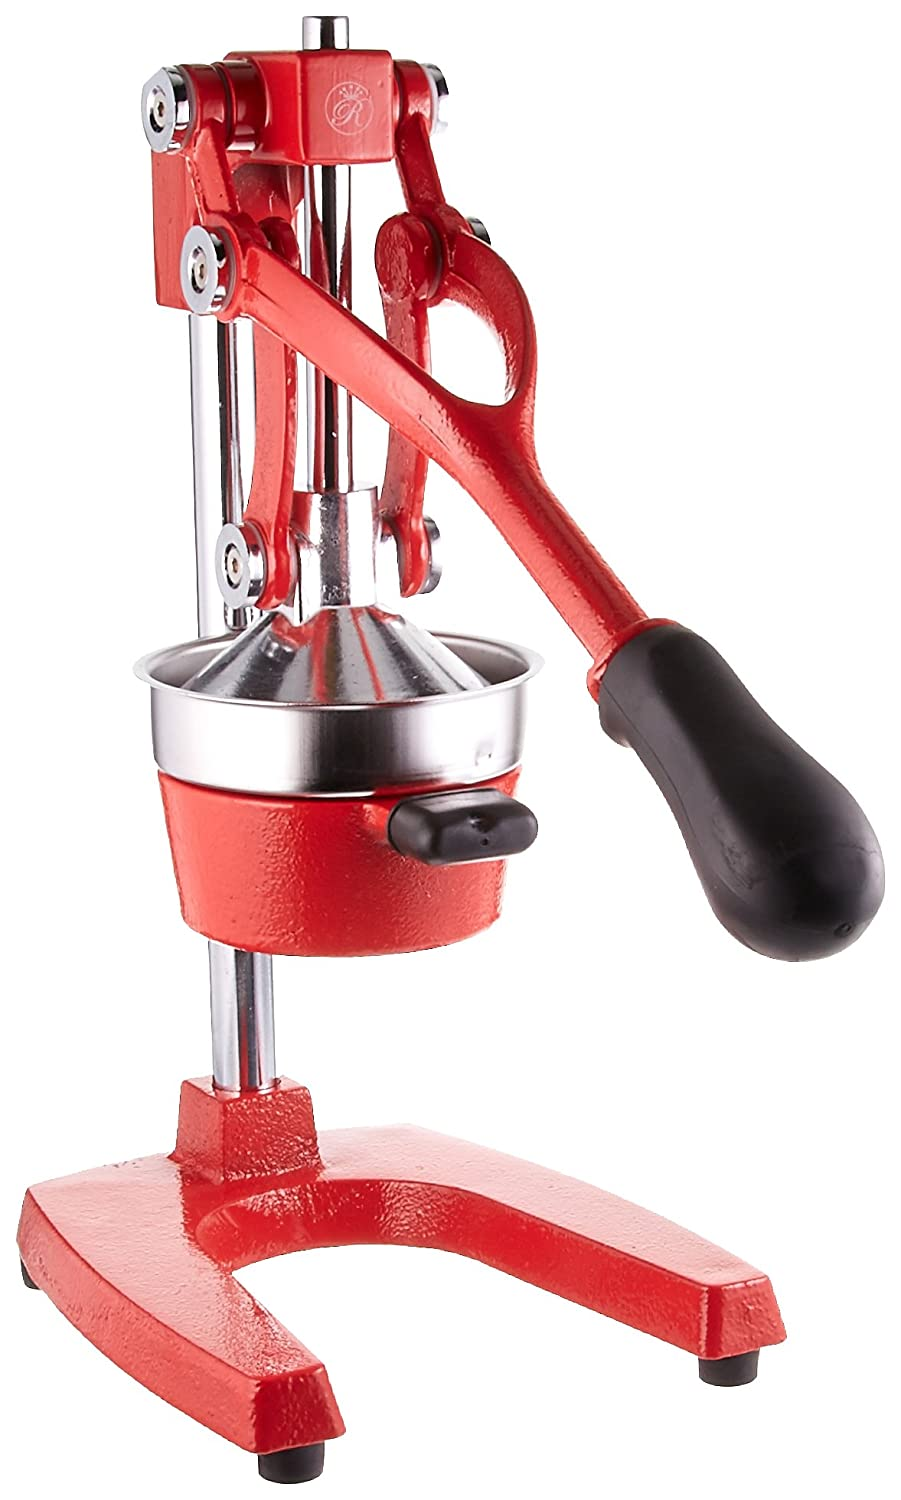 Royal Cook Roy JP-5006 Manual Lever Press Heavy Cast Iron Citrus Juicer, Red, One Size ROY JP5006